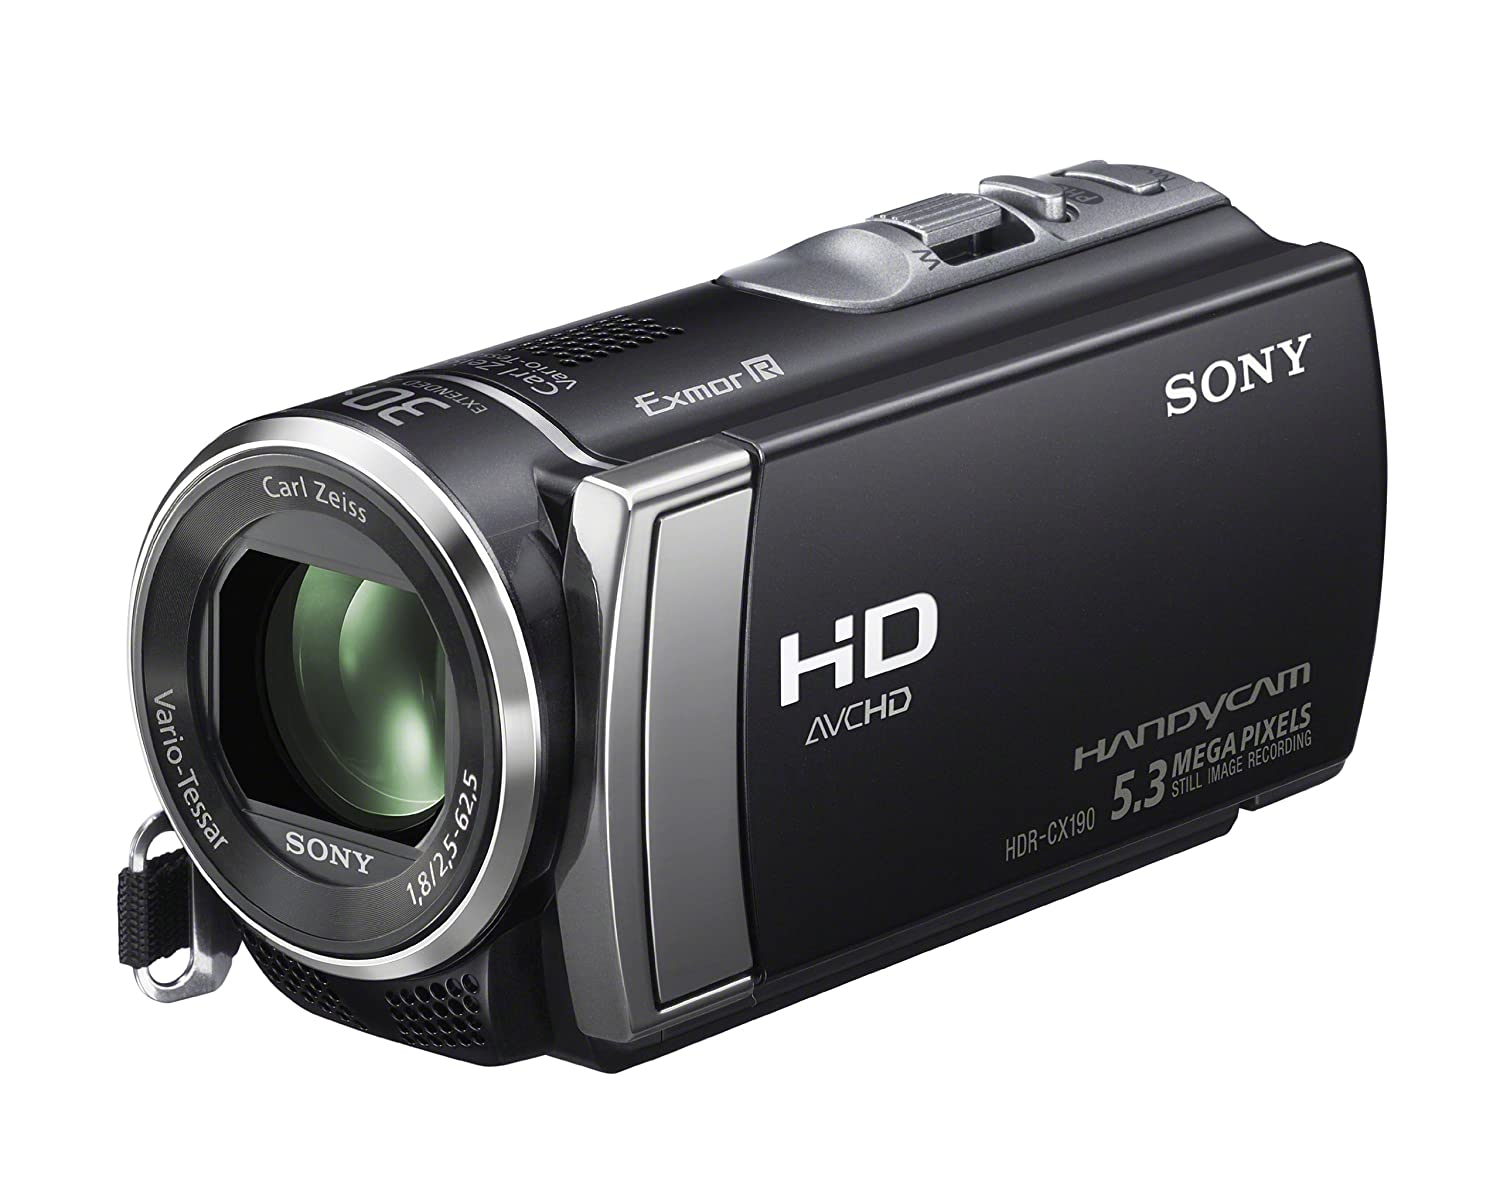 Sony HDR-CX190 High Definition Handycam 5 3 MP Camcorder(2012 Model)